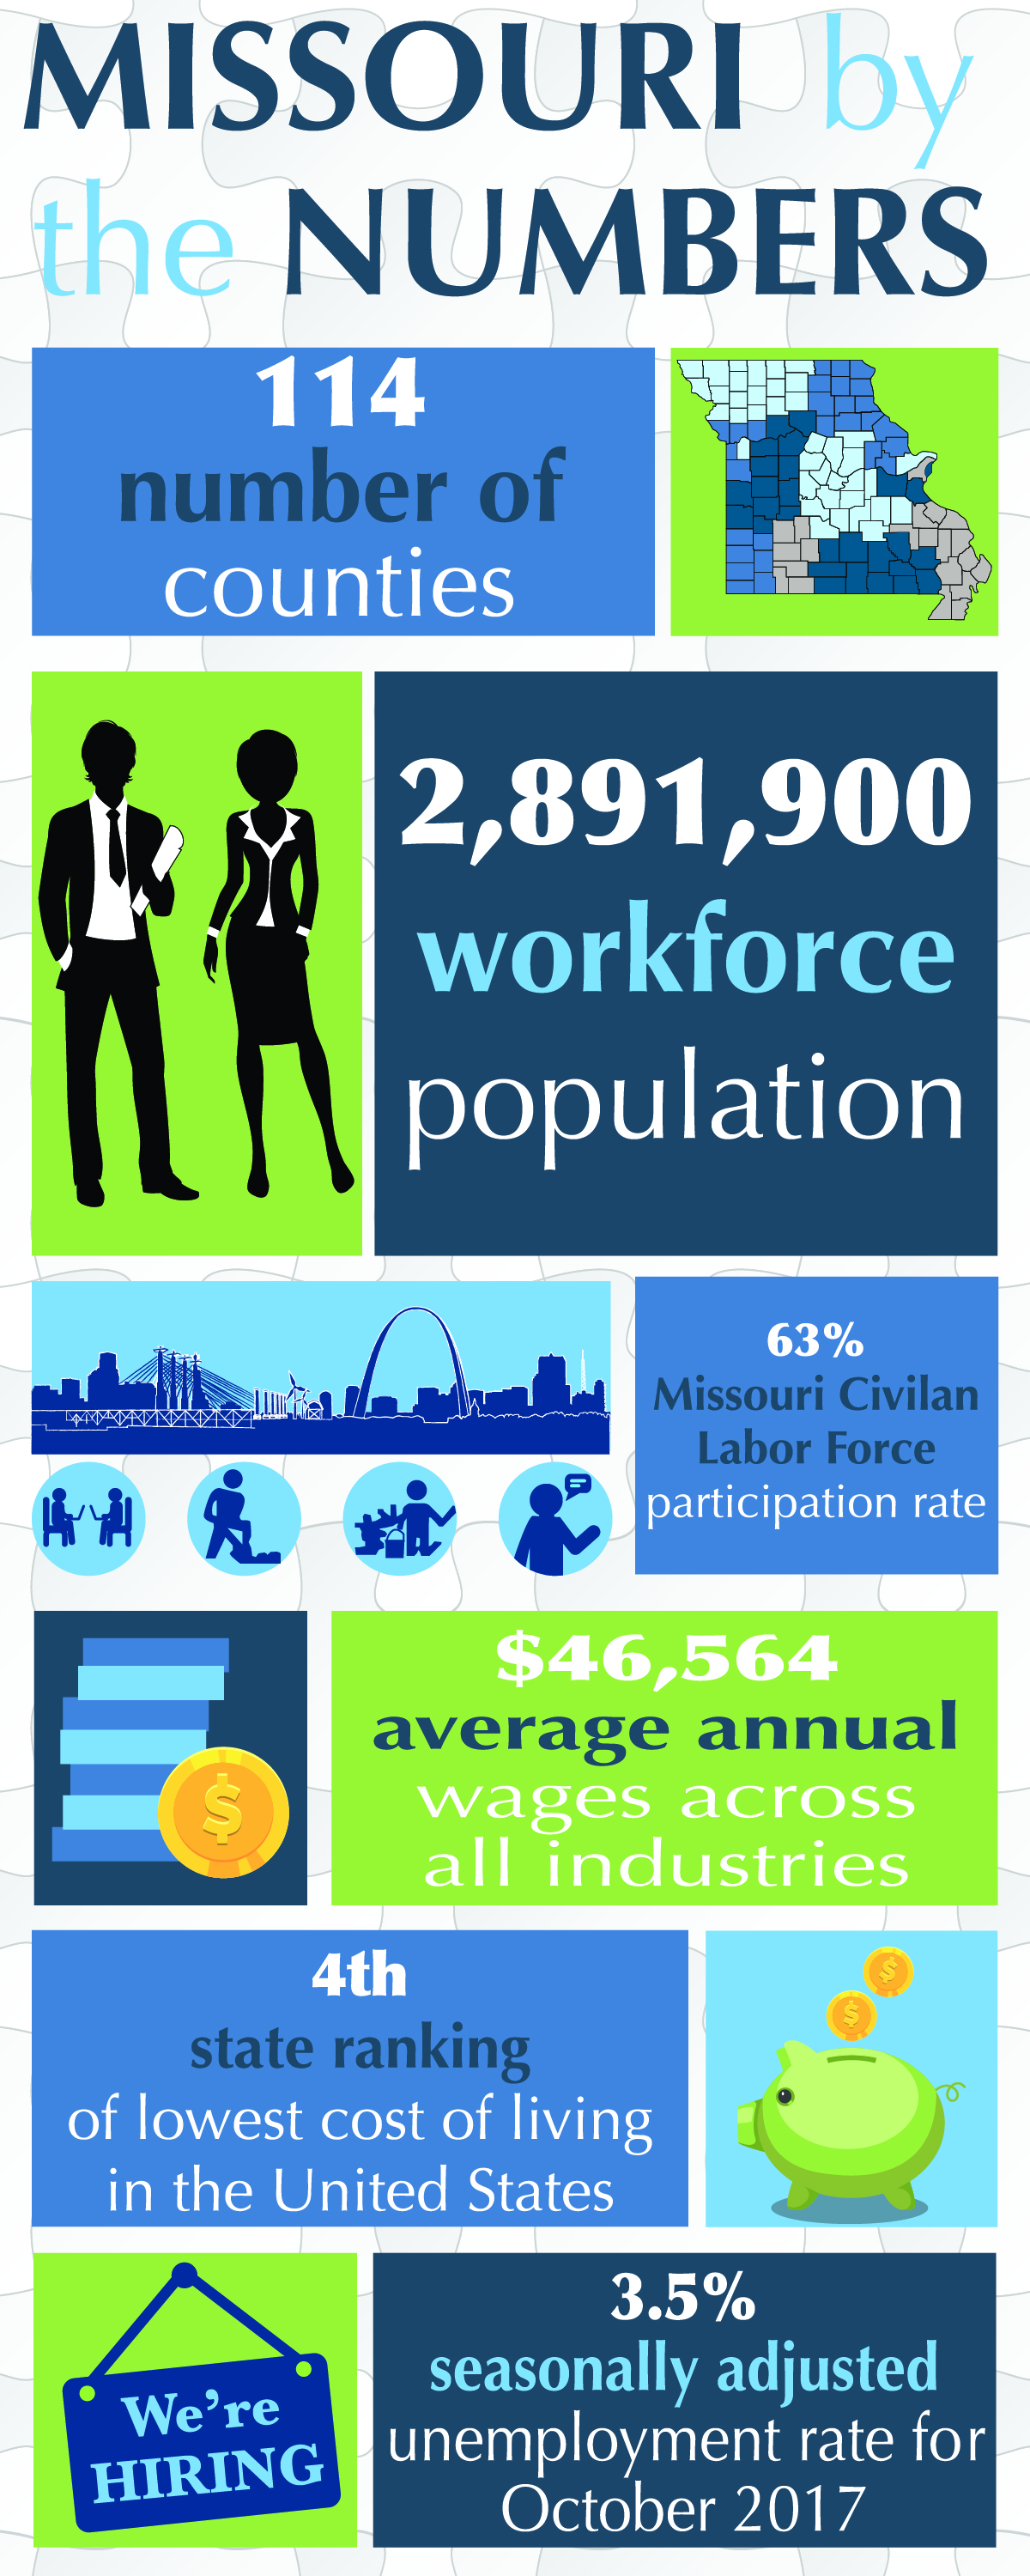 Infographic - Missouri by the numbers